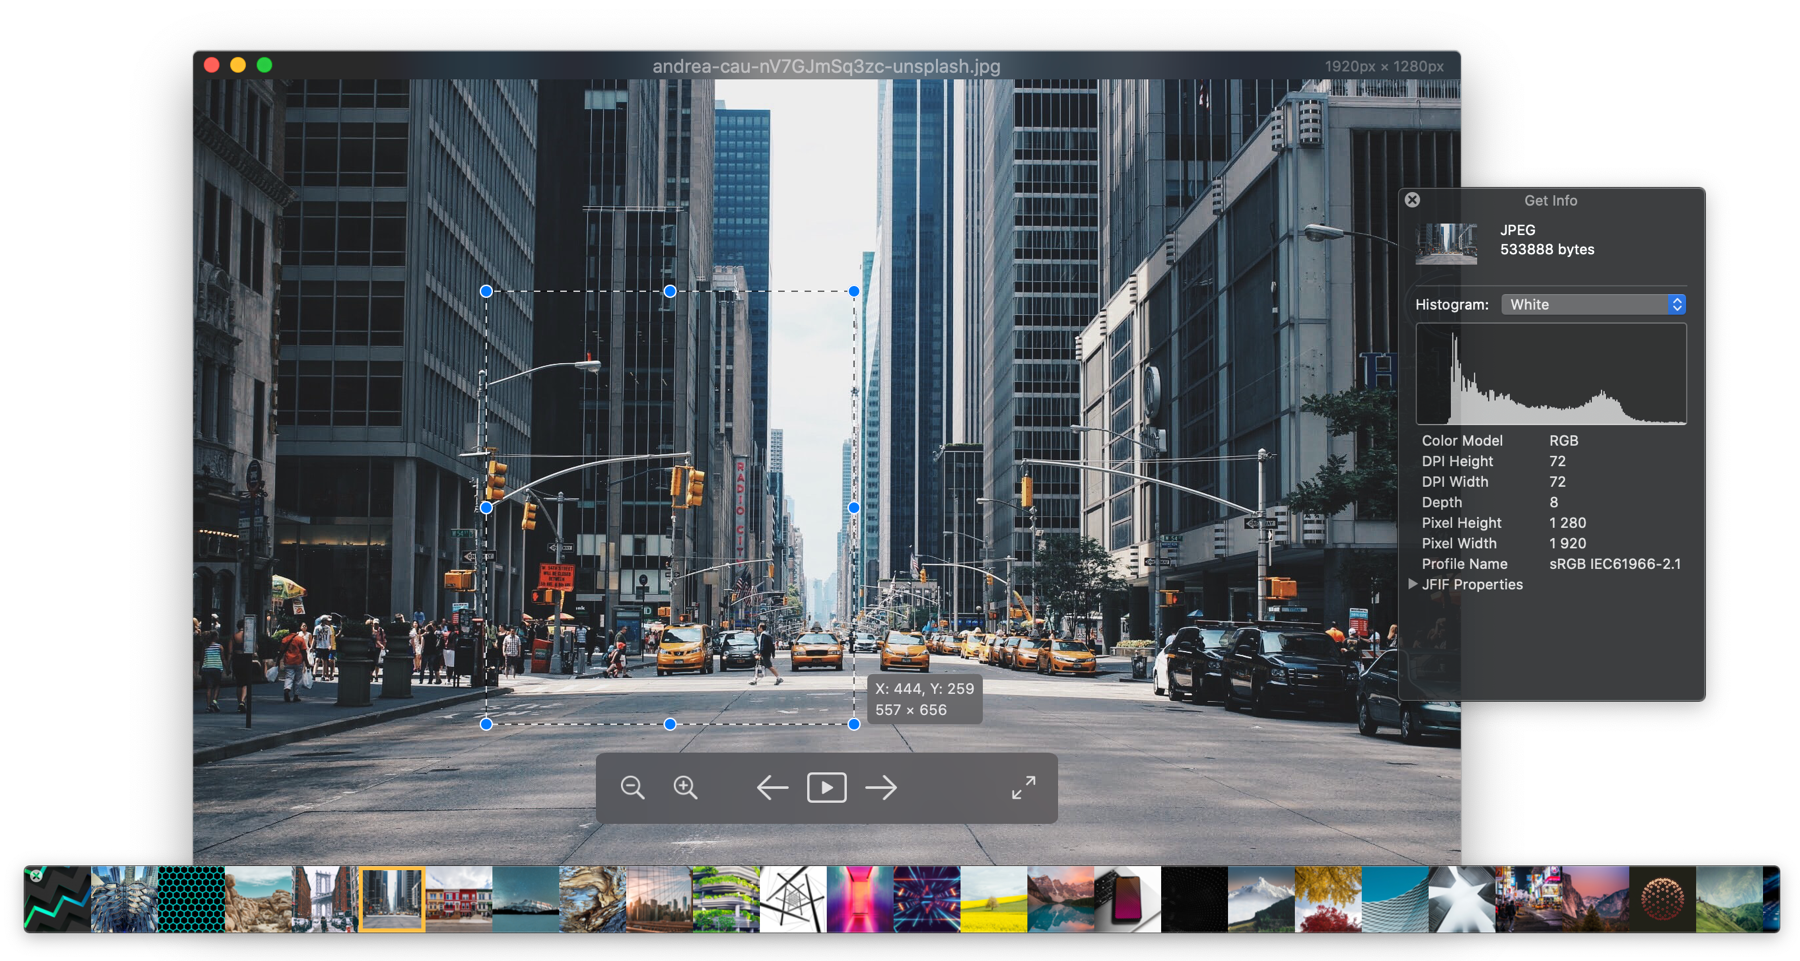 PIXEA - Free image viewer for macOS